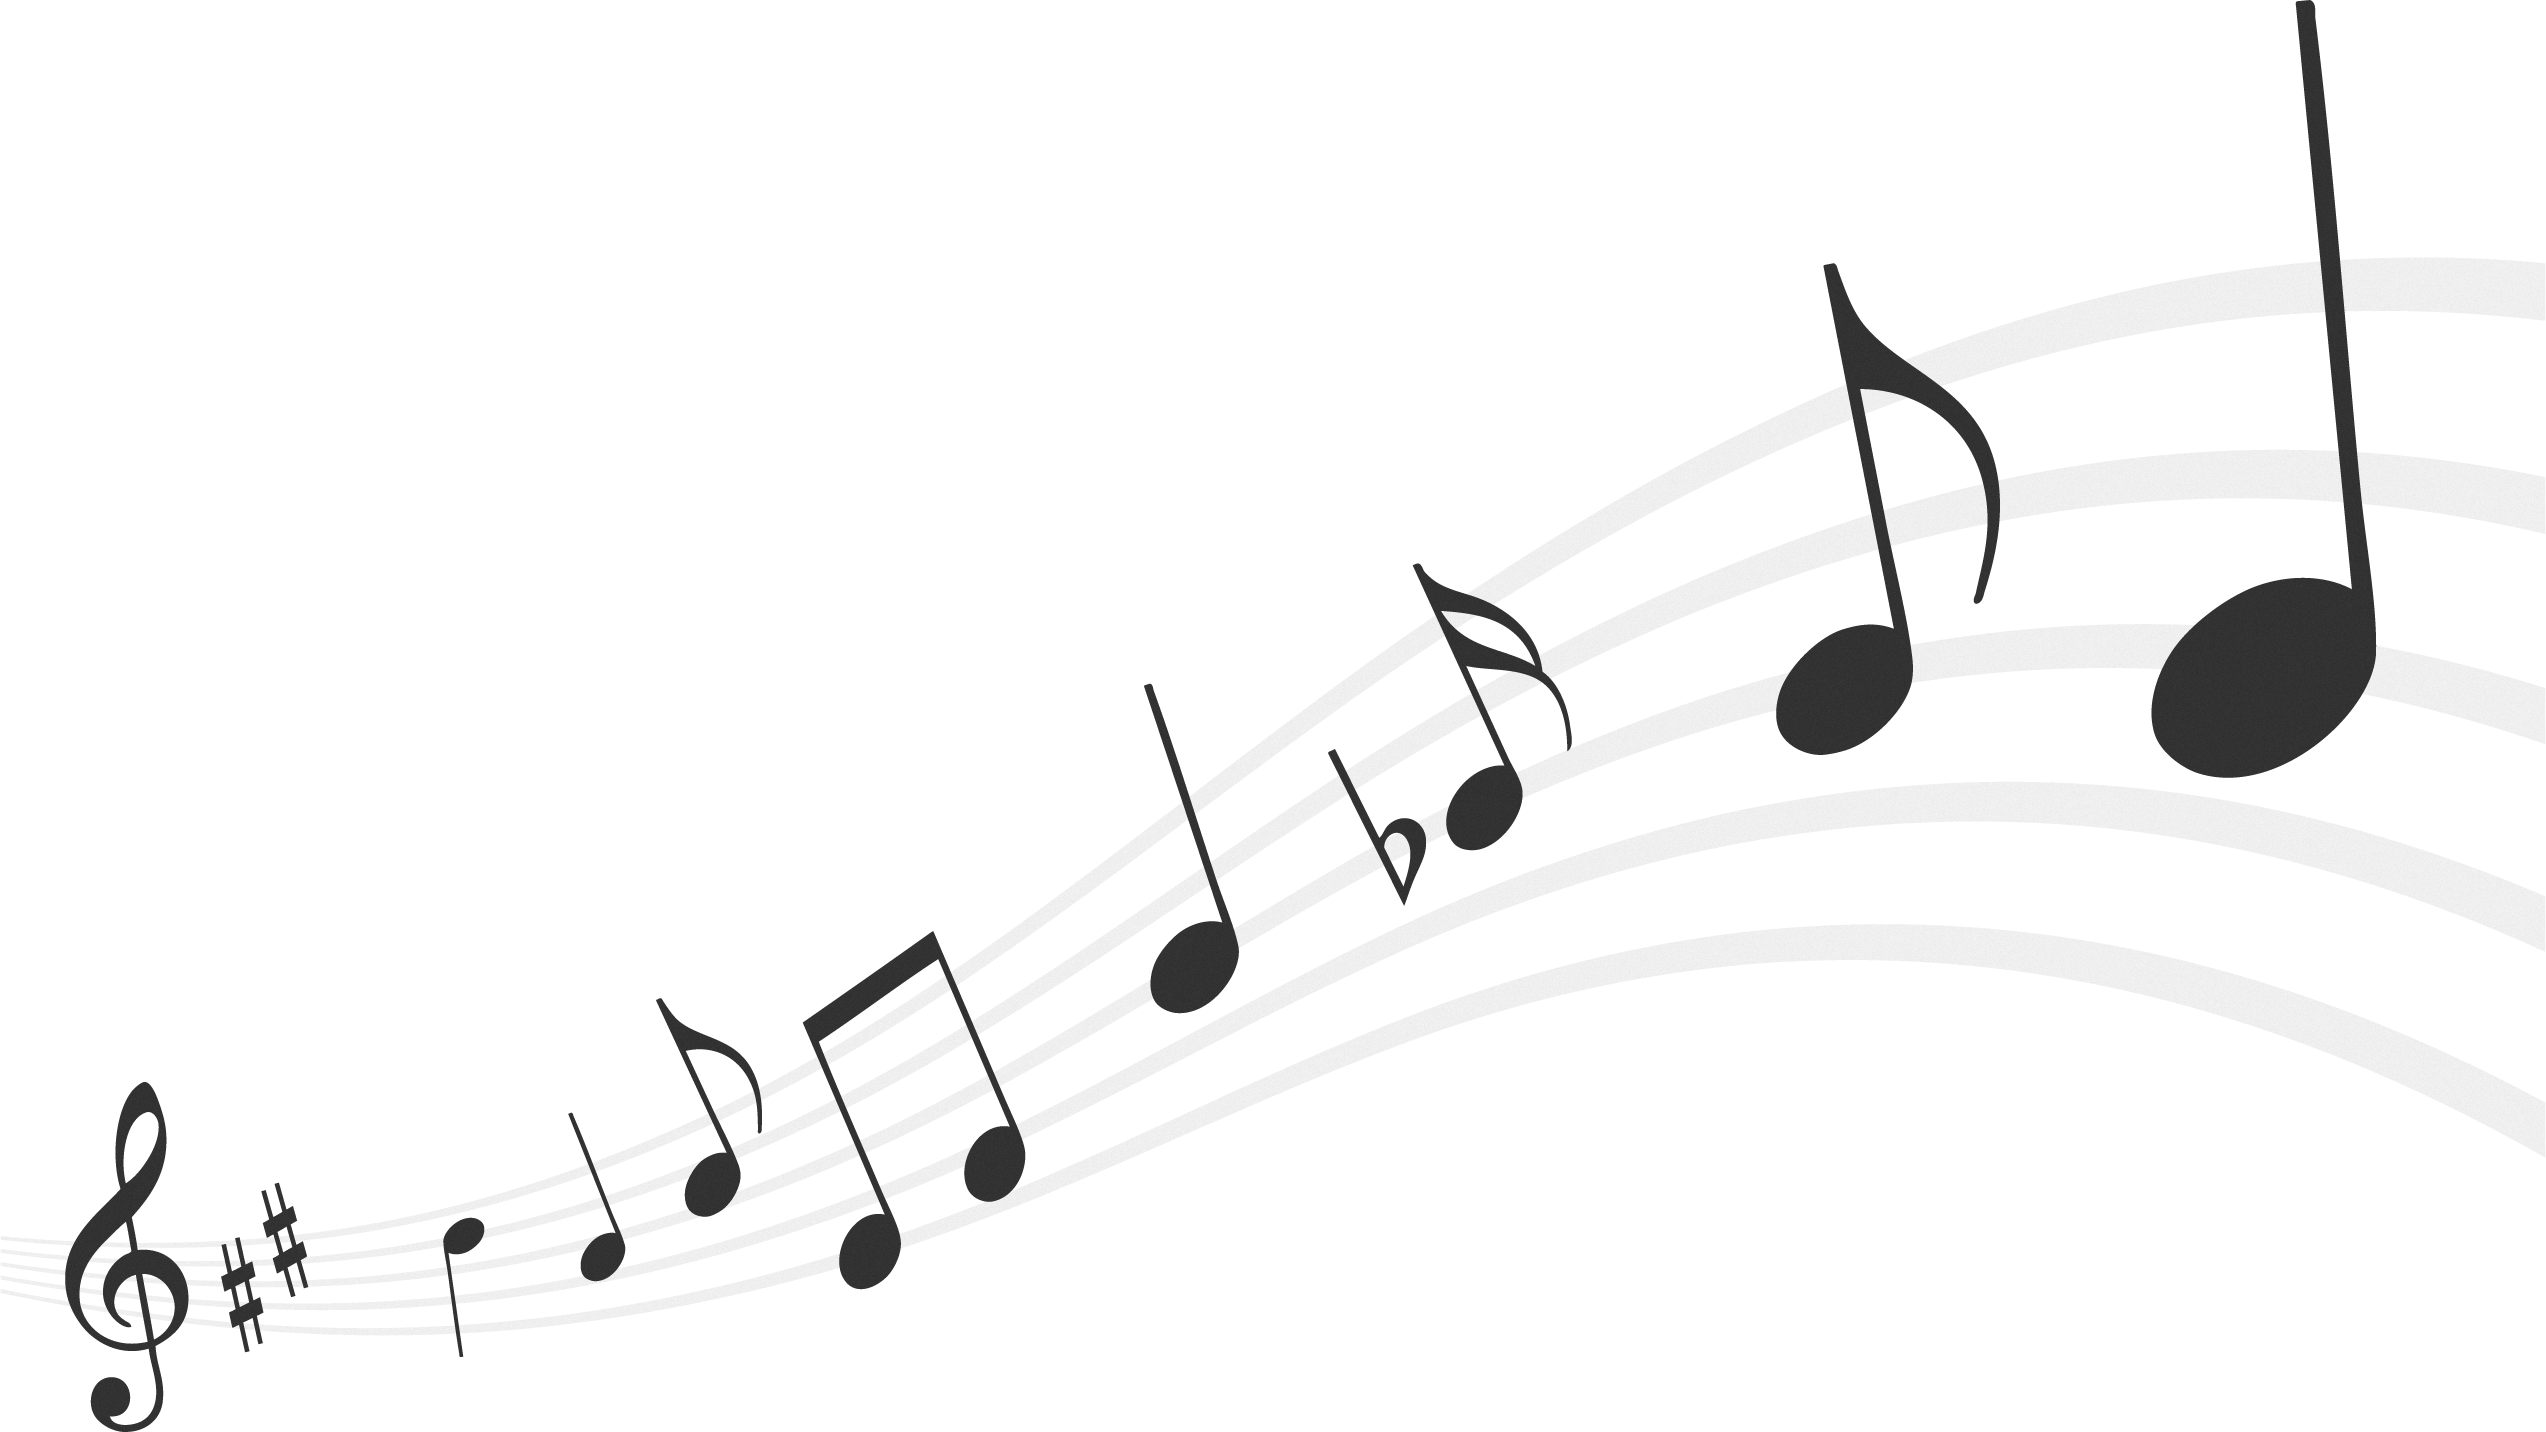 Music Note.png - Music notes PNG images free download, note clef PNG